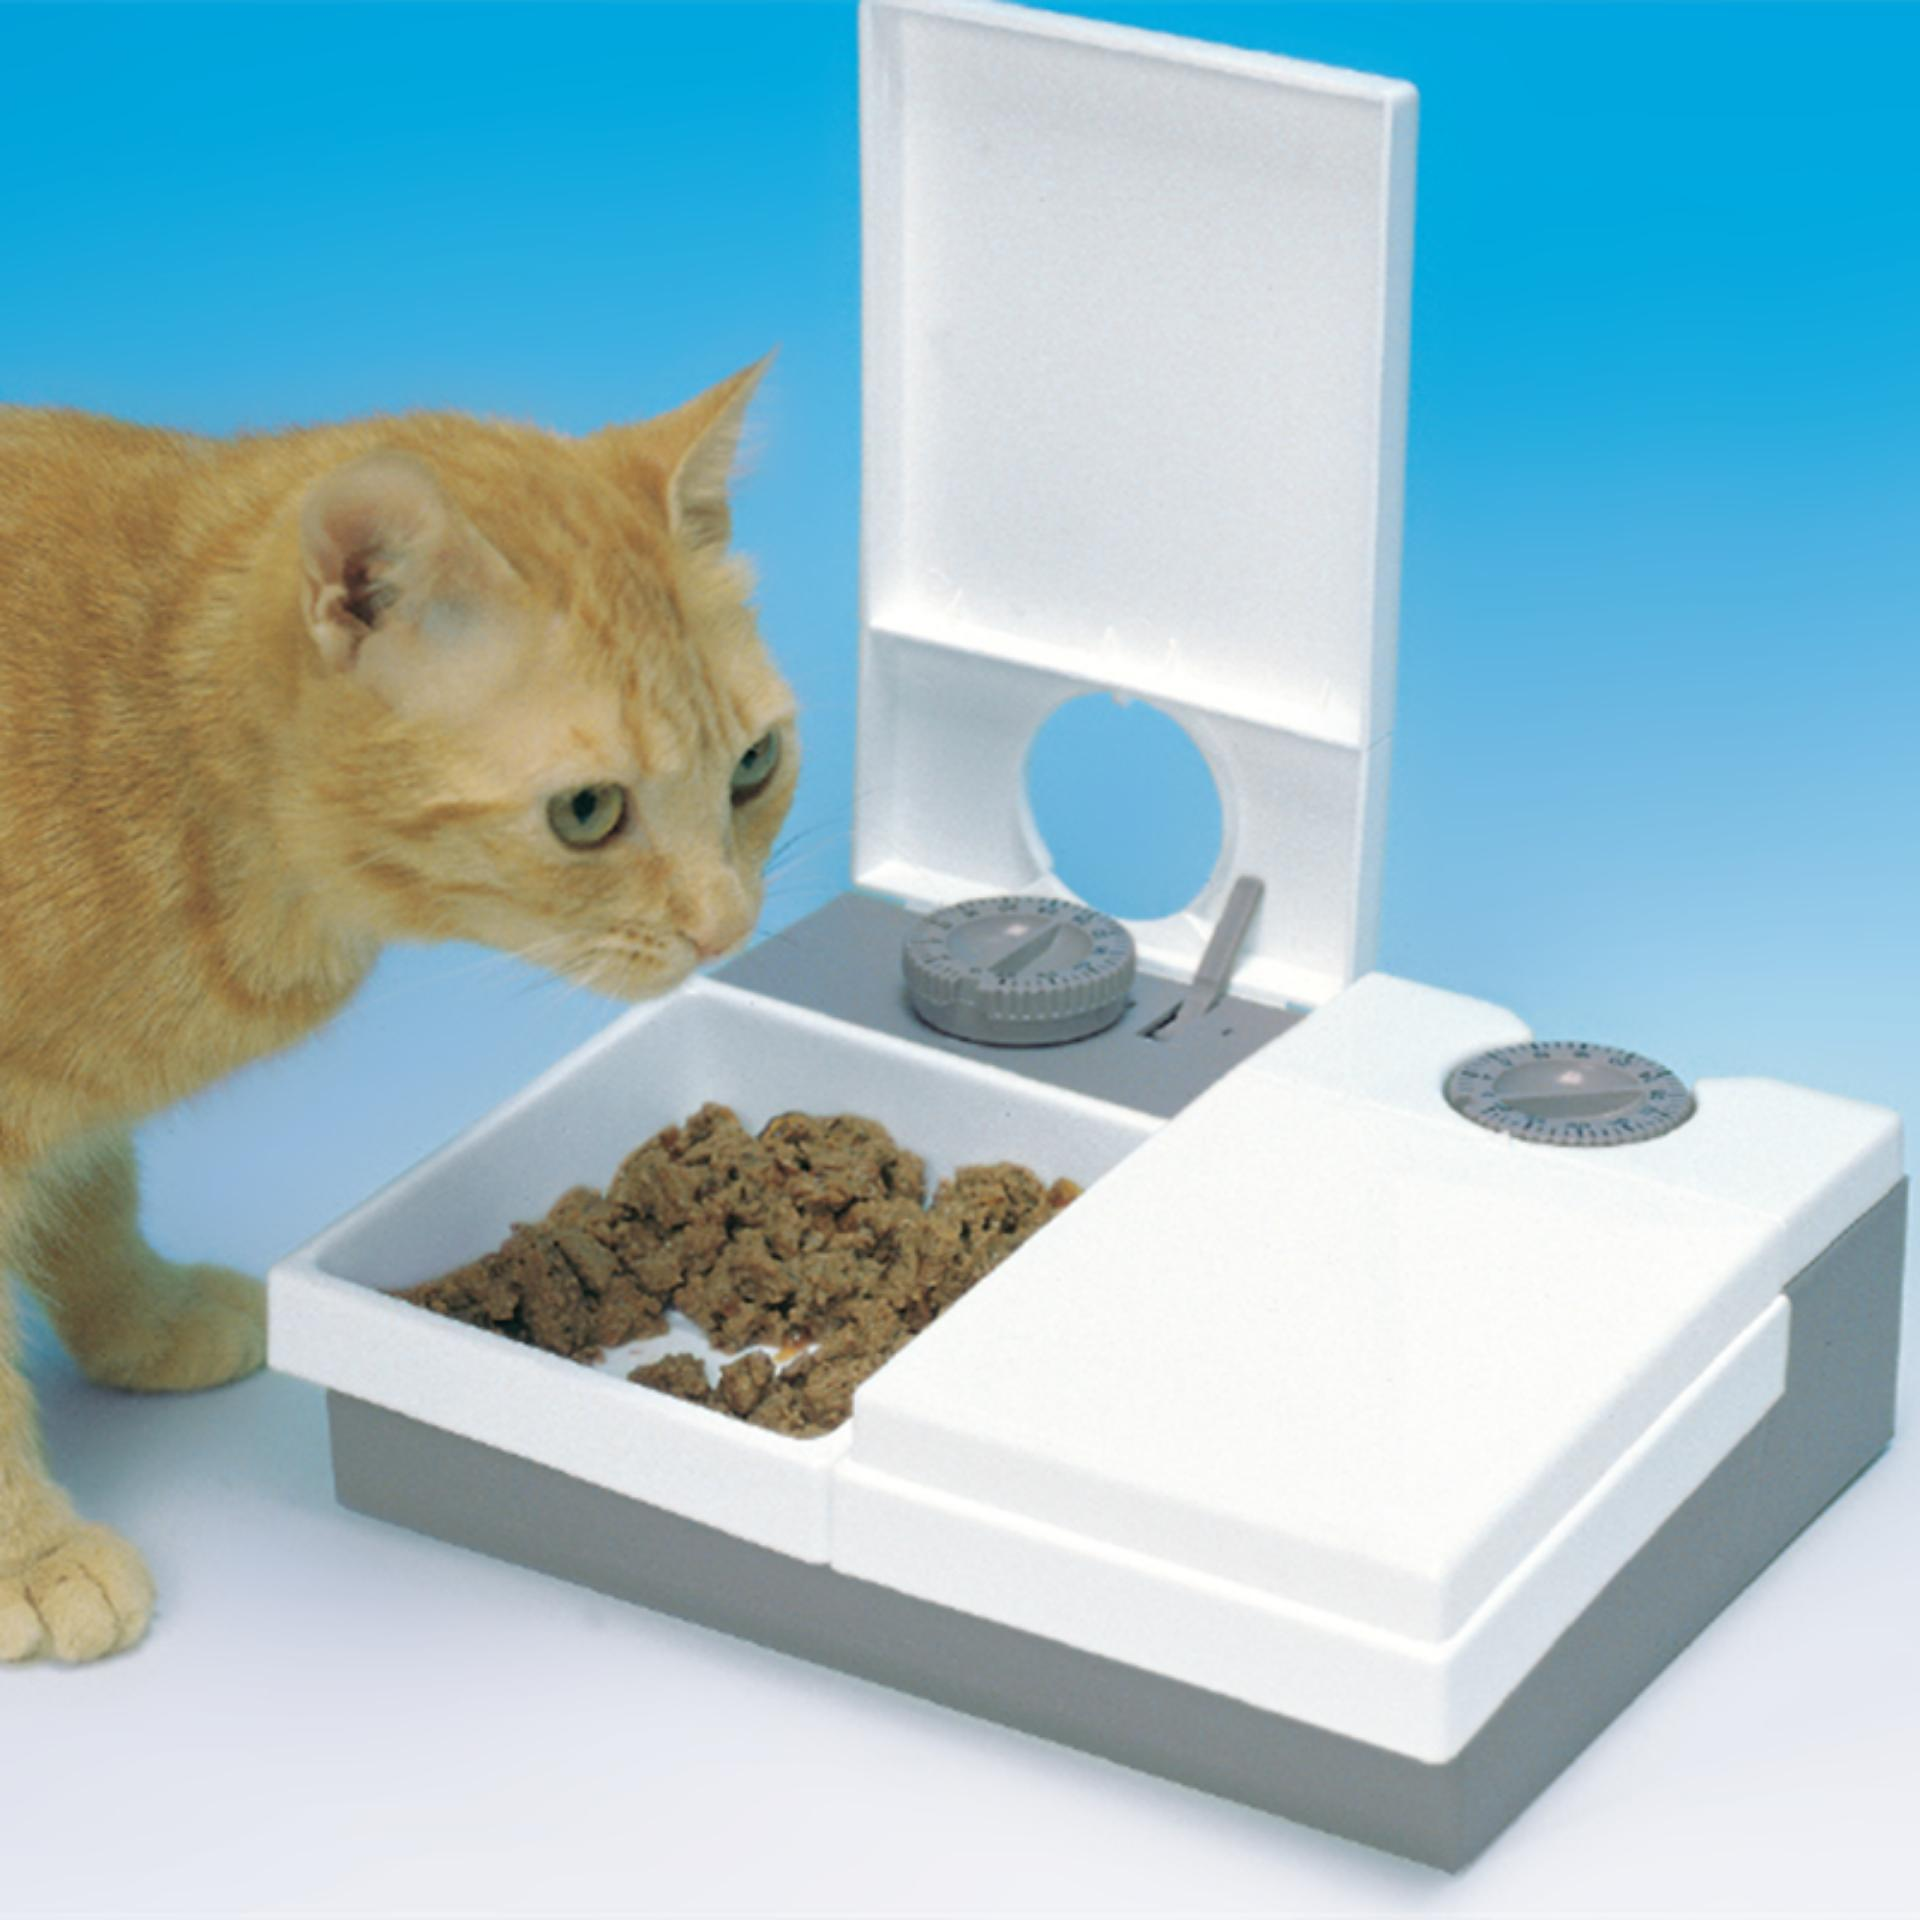 eatwell petsafe dog automatic meal timer or with cat watch electronic feeder